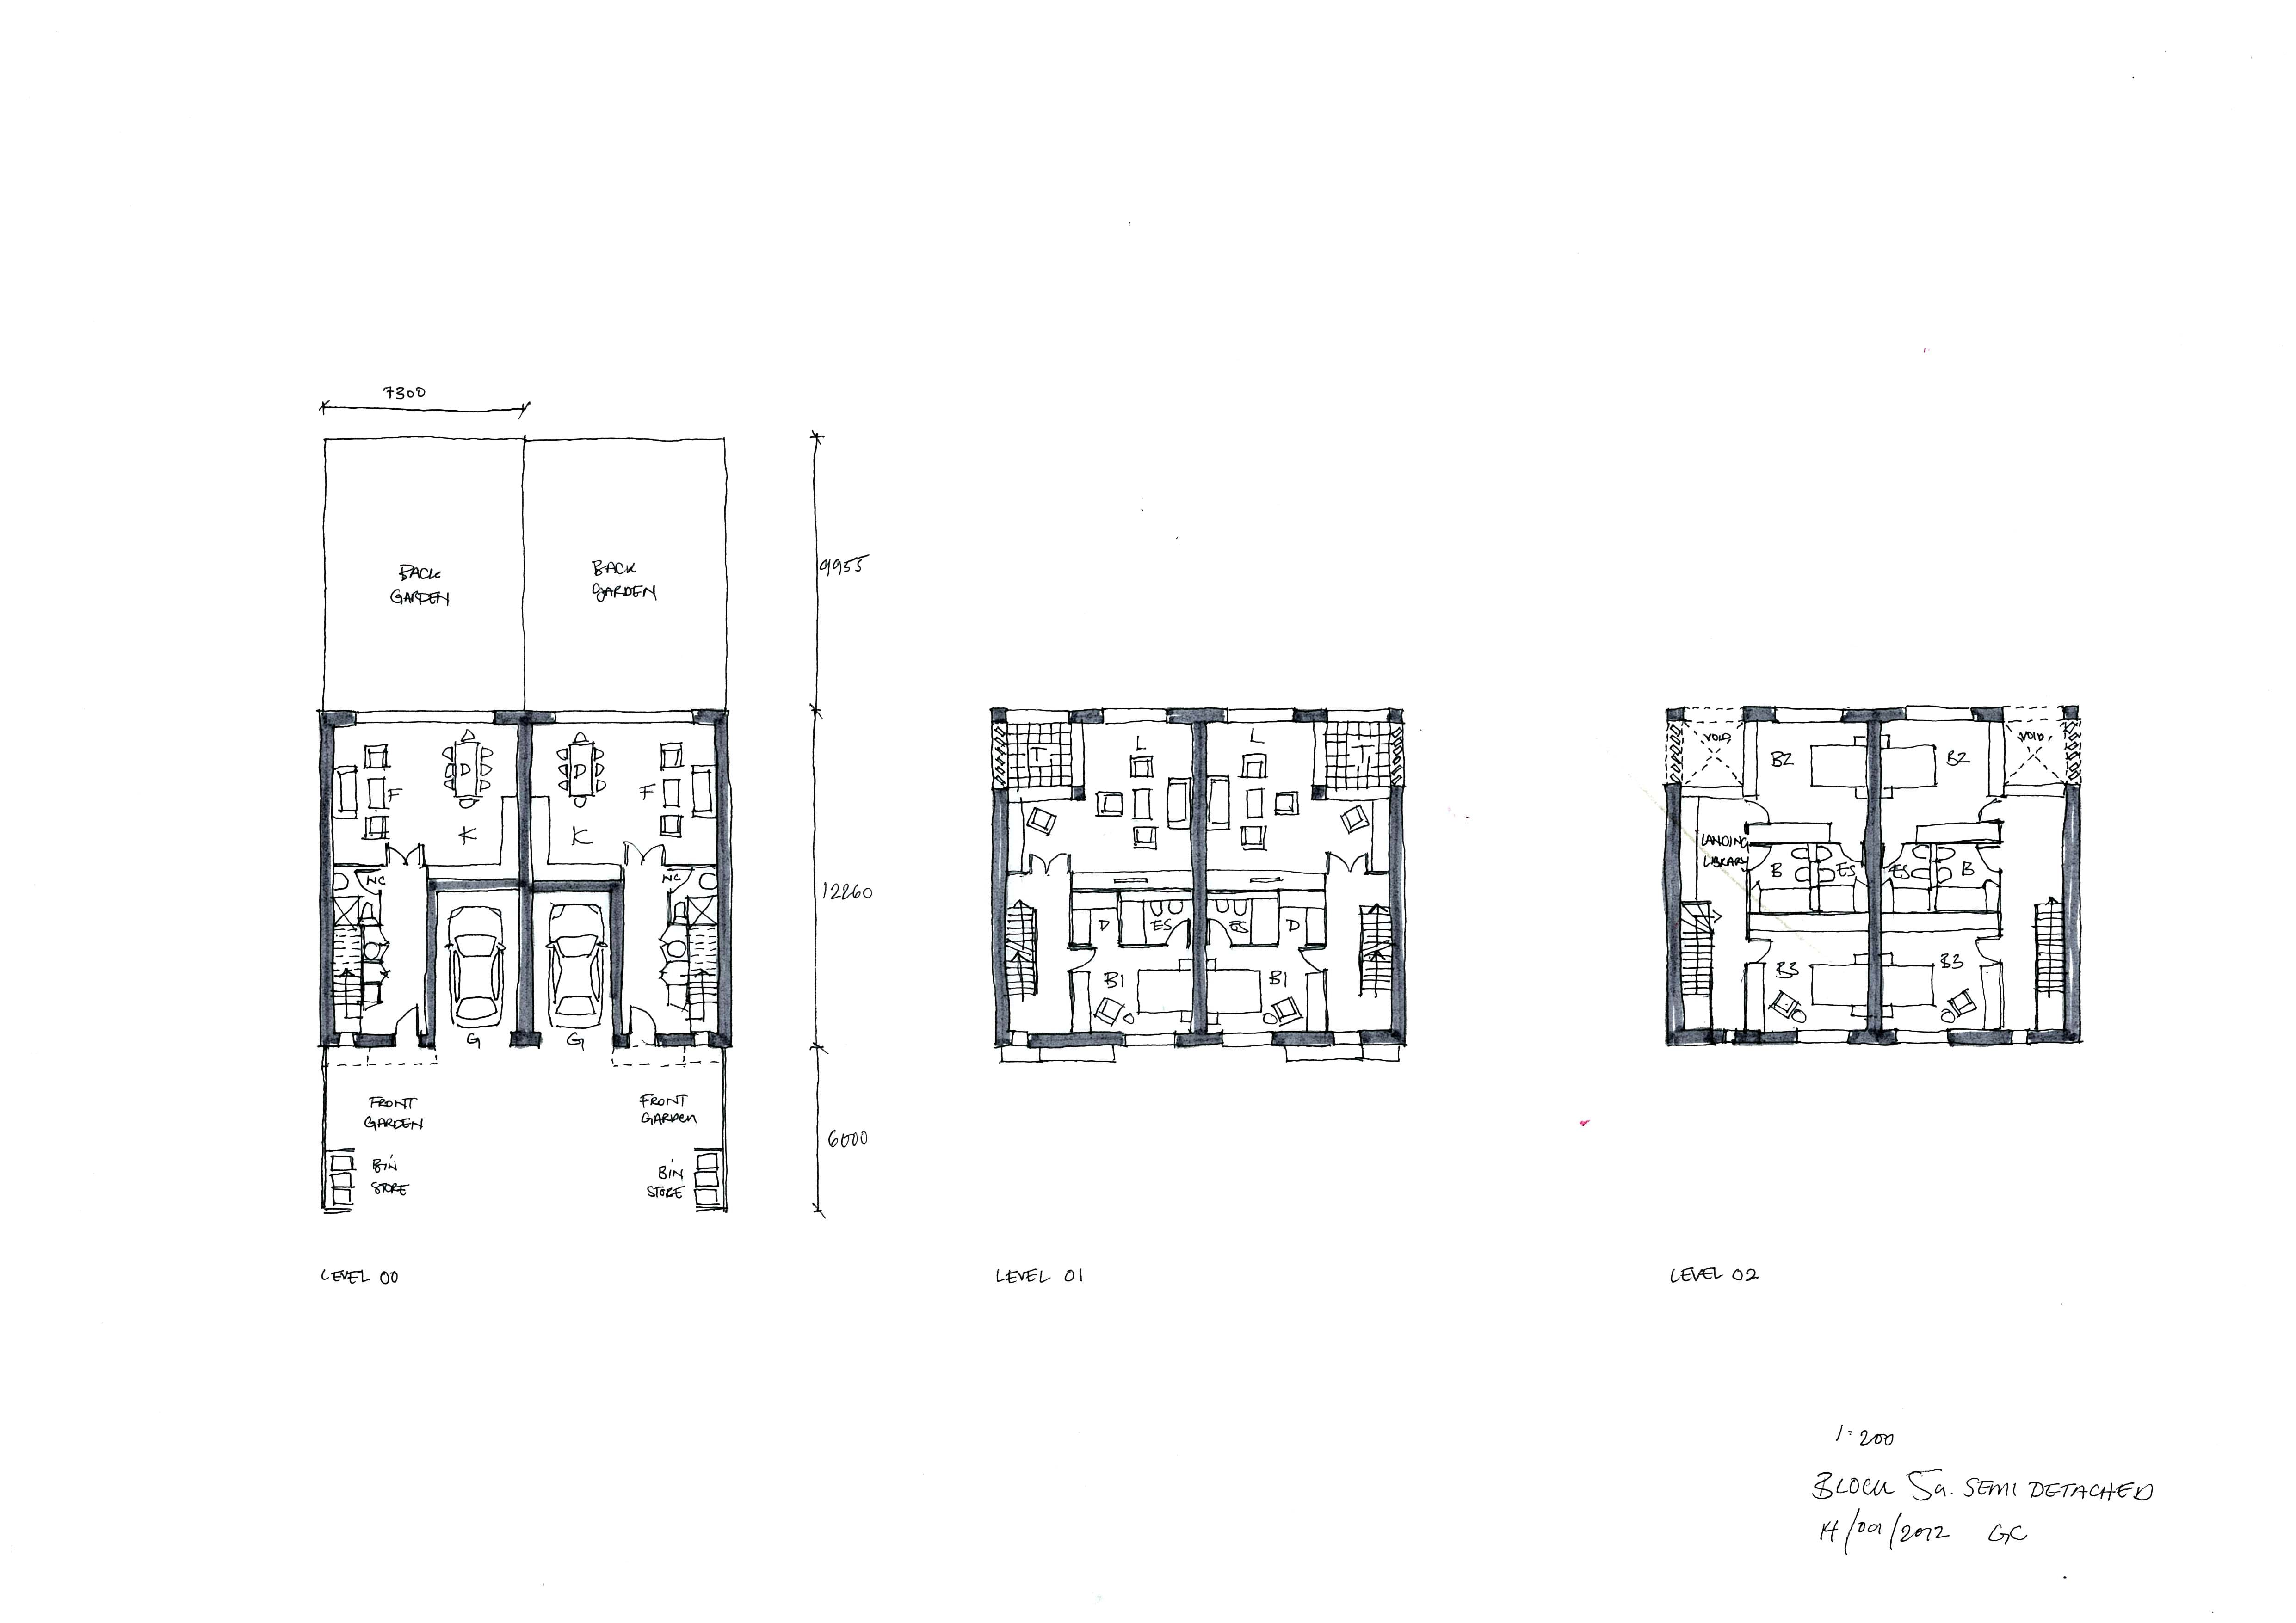 120914_Block 5a SemiDetached_Proposed Furniture Layout 2 copy.jpg